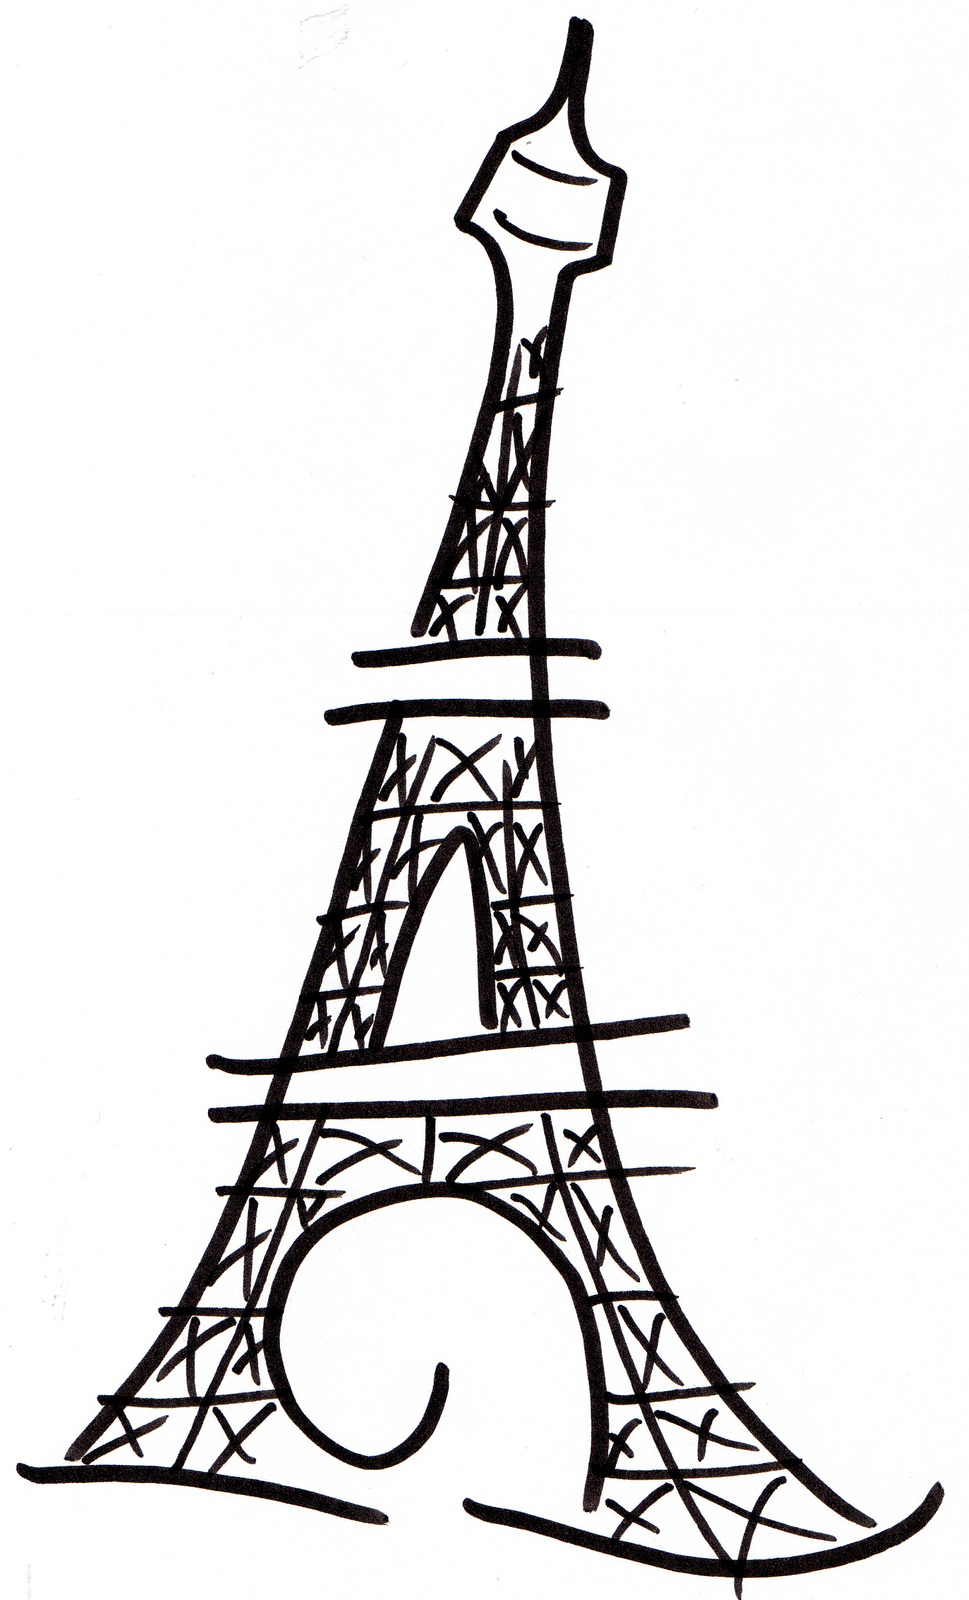 Eiffel Tower clipart #8, Download drawings